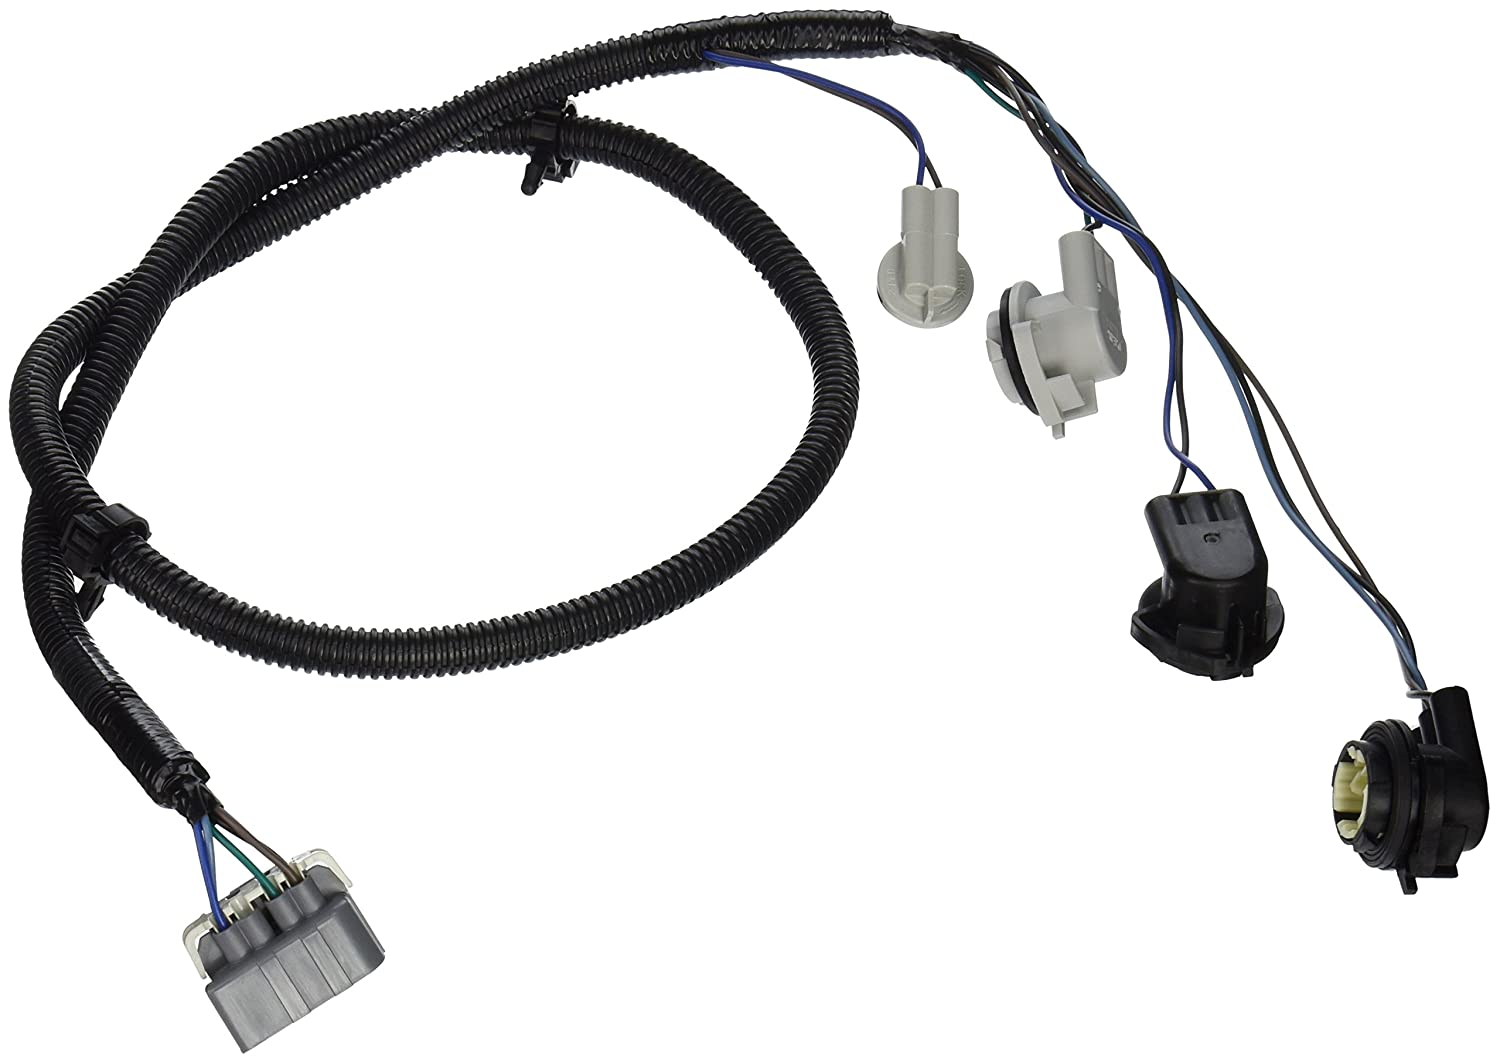 81sfkEXtmvL._SL1500_ amazon com genuine gm 16531401 tail lamp wiring harness automotive GM Turn Signal Wiring at reclaimingppi.co